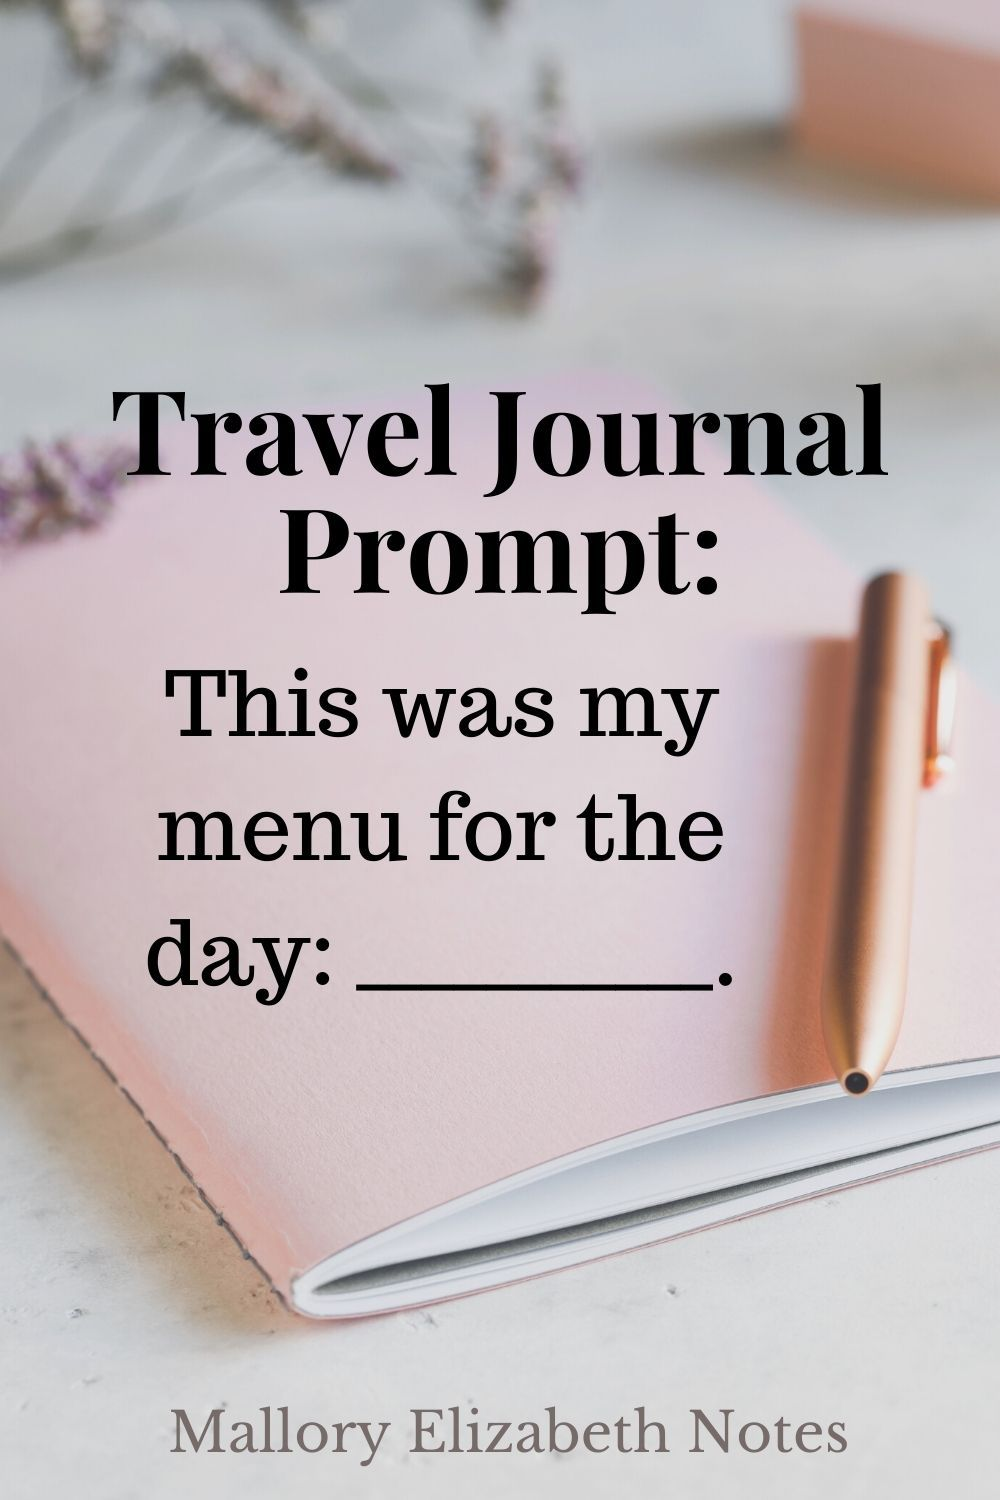 Journal prompts are important for travel journals because they guide what you say about your travels. #journalwritingprompts #traveljournalideas #traveljournalscrapbook #travelersnotebook #traveljournalprompts